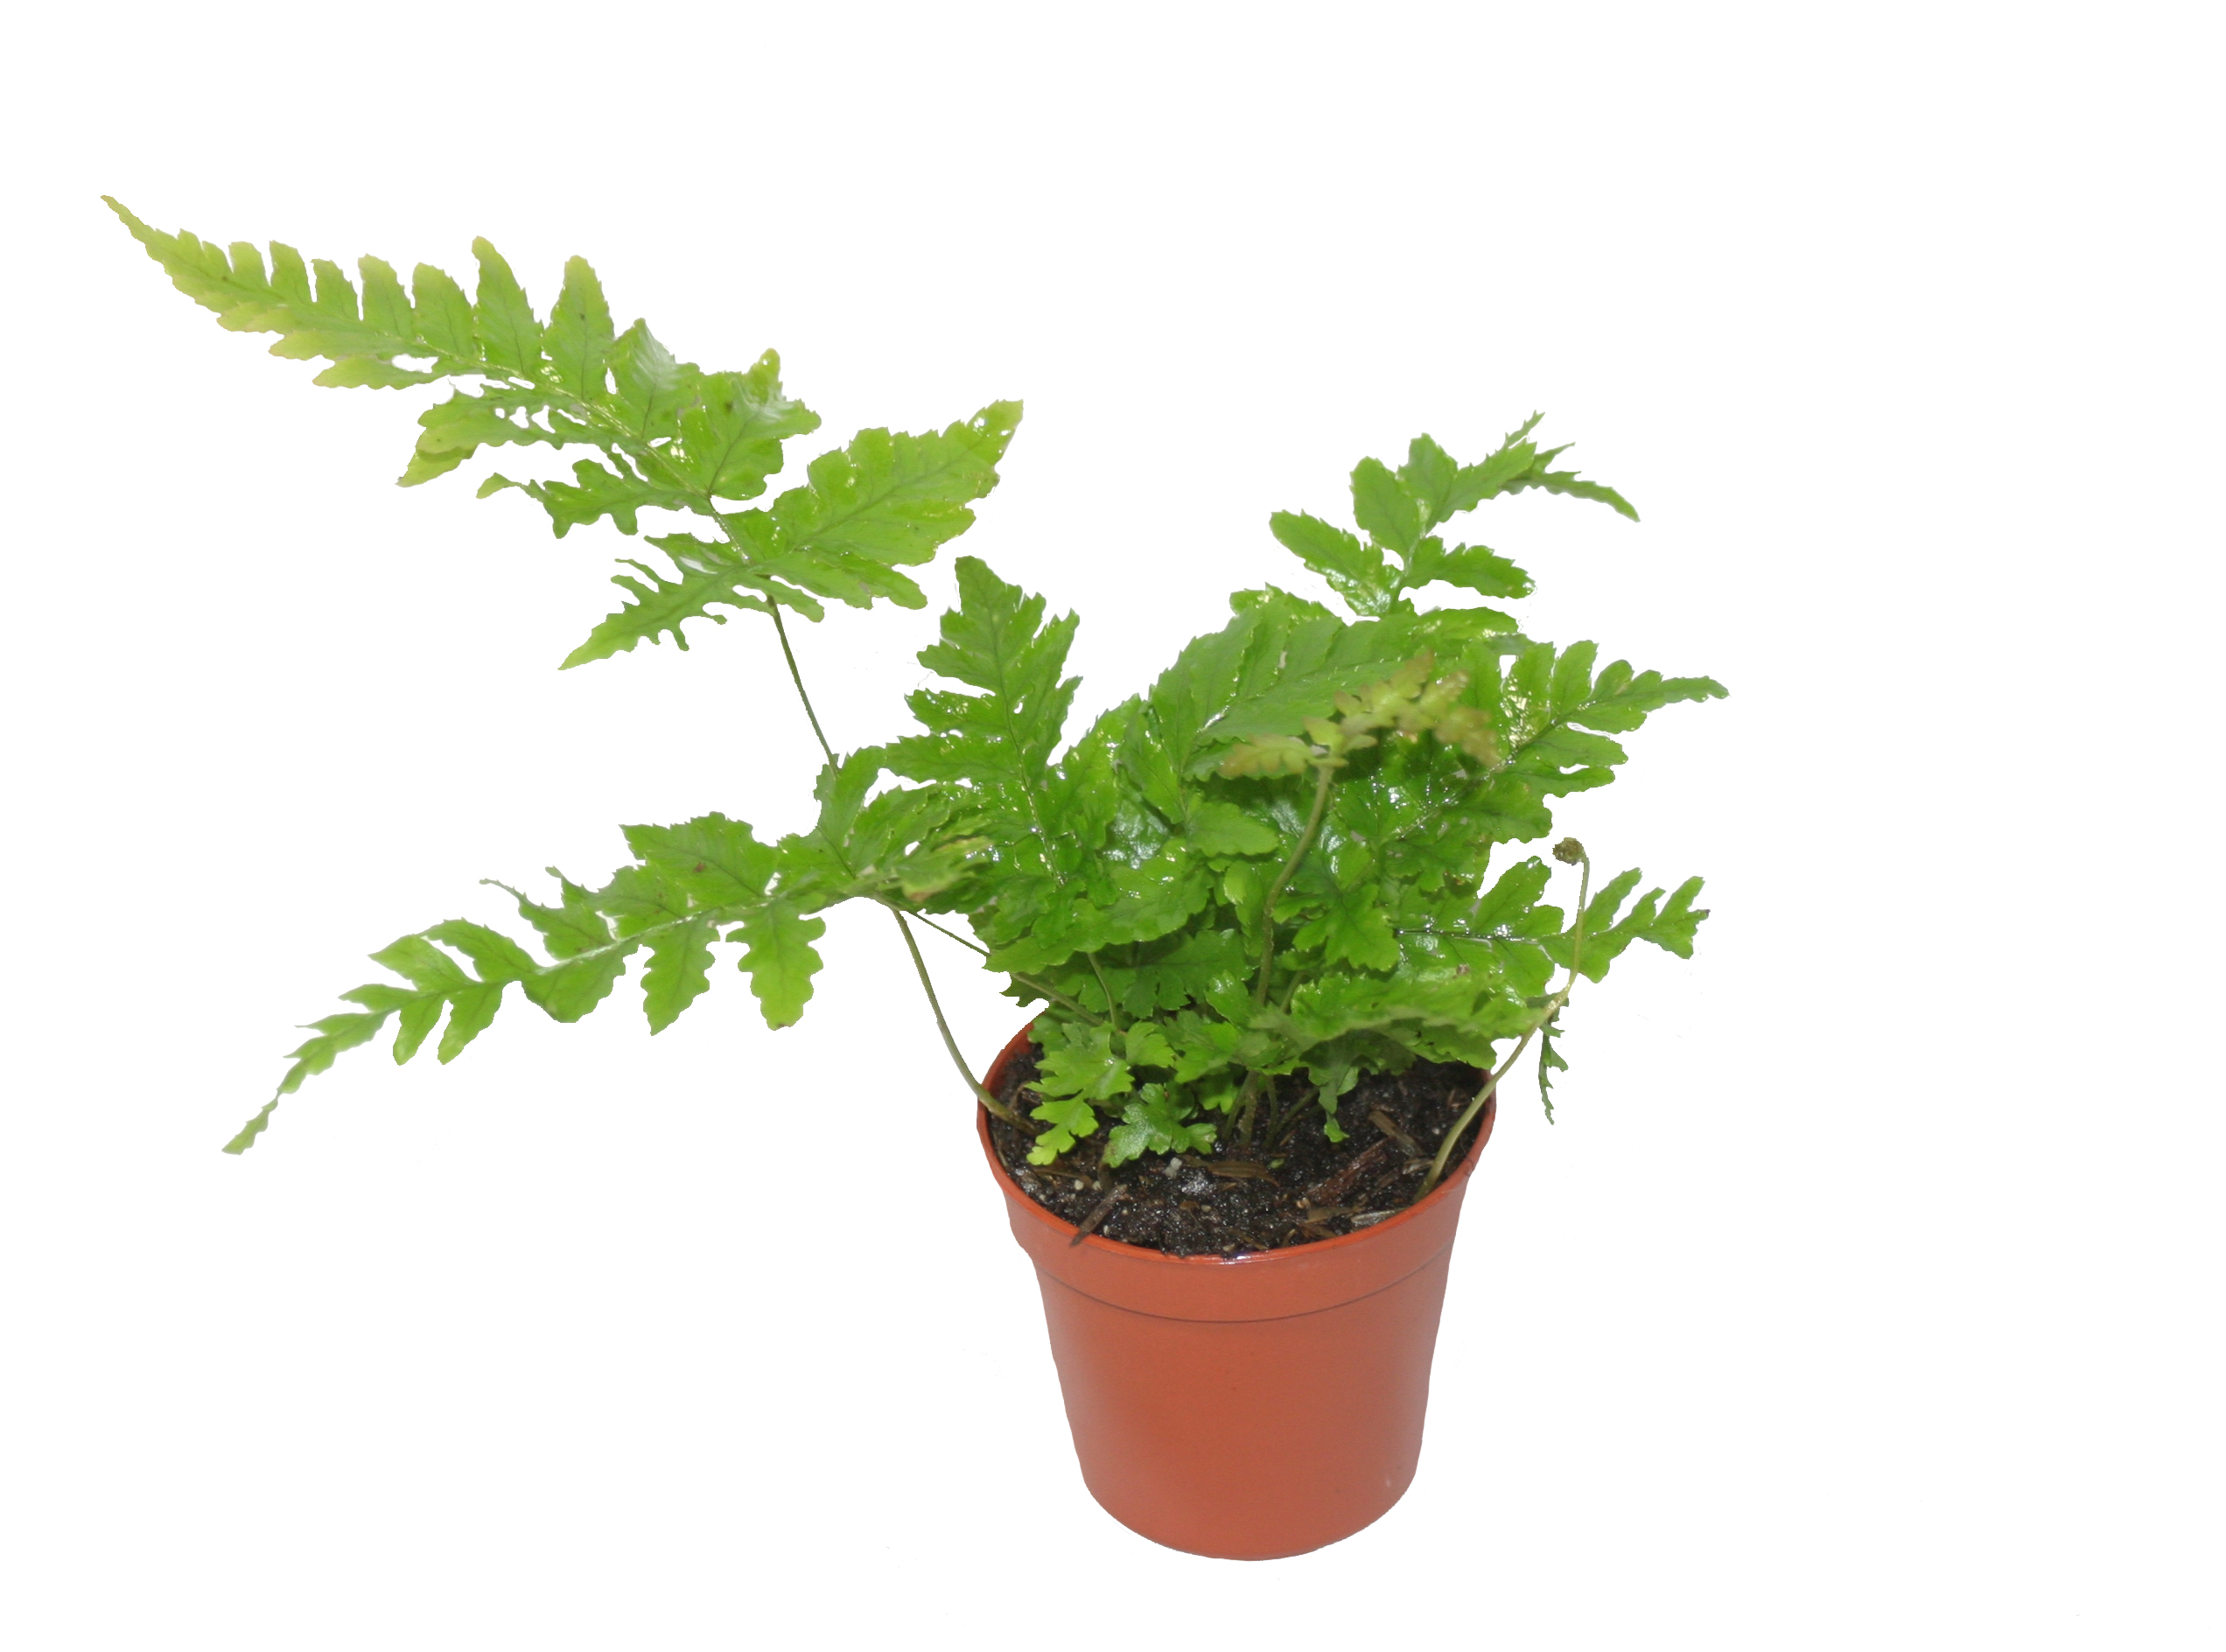 The Autumn Fern Pixie Plants Central Florida Ferns Silver Lace Fern Soil 655 Silver Lace Blvd Fernley Nv houzz-03 Silver Lace Fern